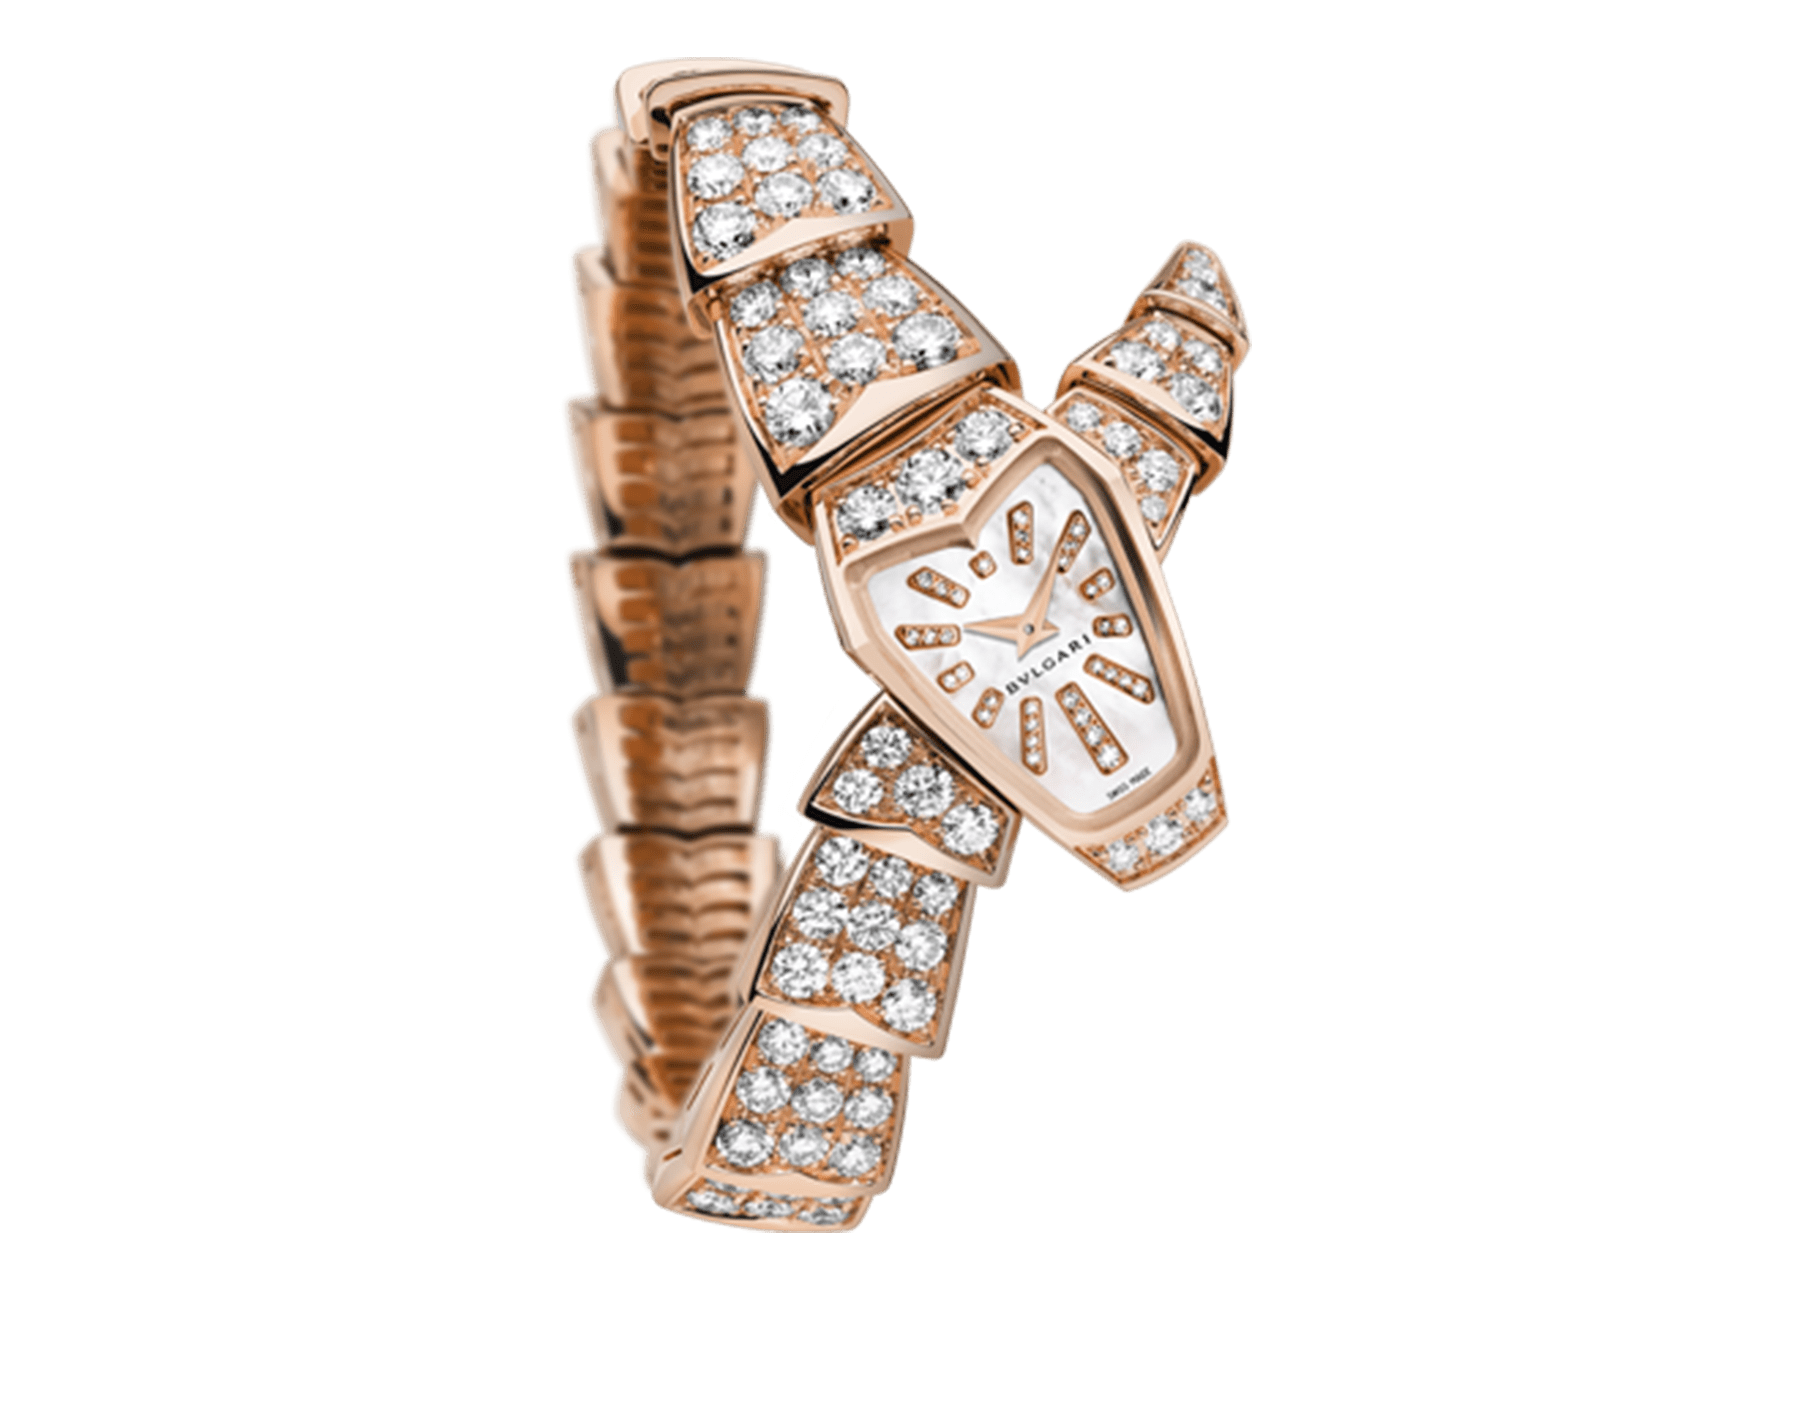 Serpenti Jewellery Watch in 18 kt rose gold case and single spiral bracelet, both set with brilliant cut diamonds, pink mother-of-pearl dial and brilliant cut diamond indexes. 102368 image 1